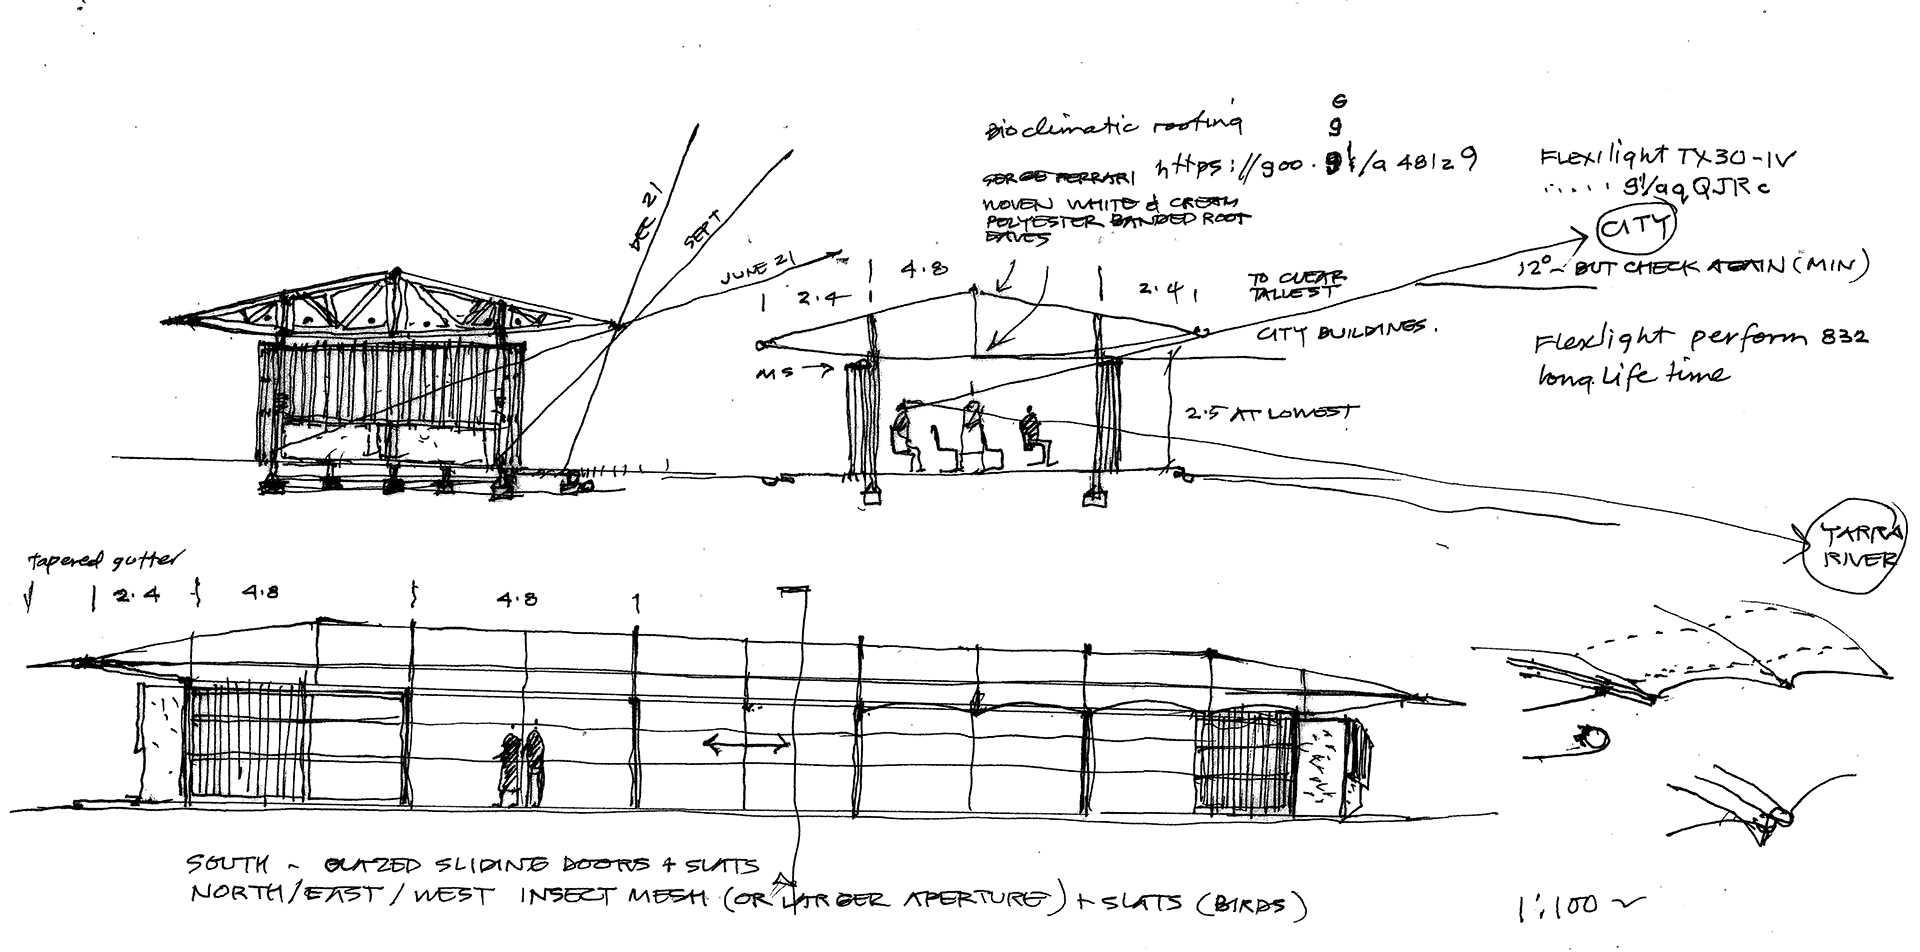 MPavilion - a sketch by the architect| MPavilion 2019| Glenn Murcutt| STIR